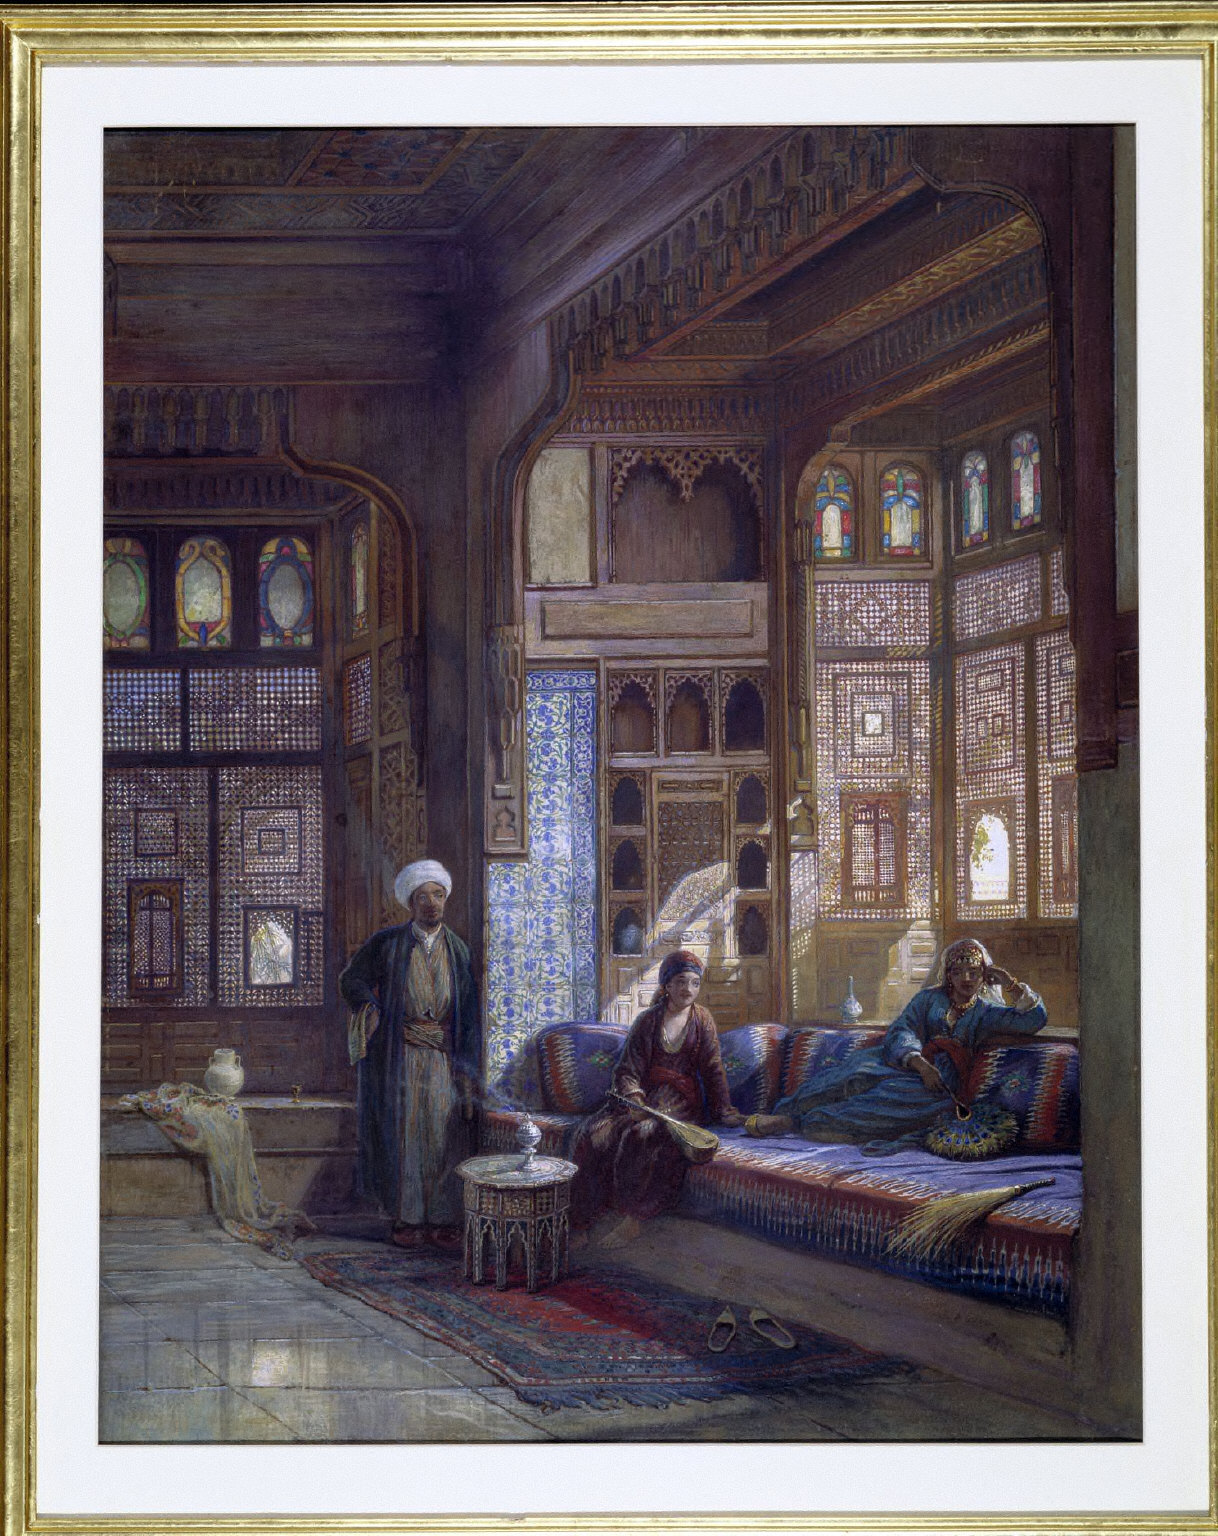 A ROOM IN THE HOUSE OF SHAYK SADAT, CAIRO